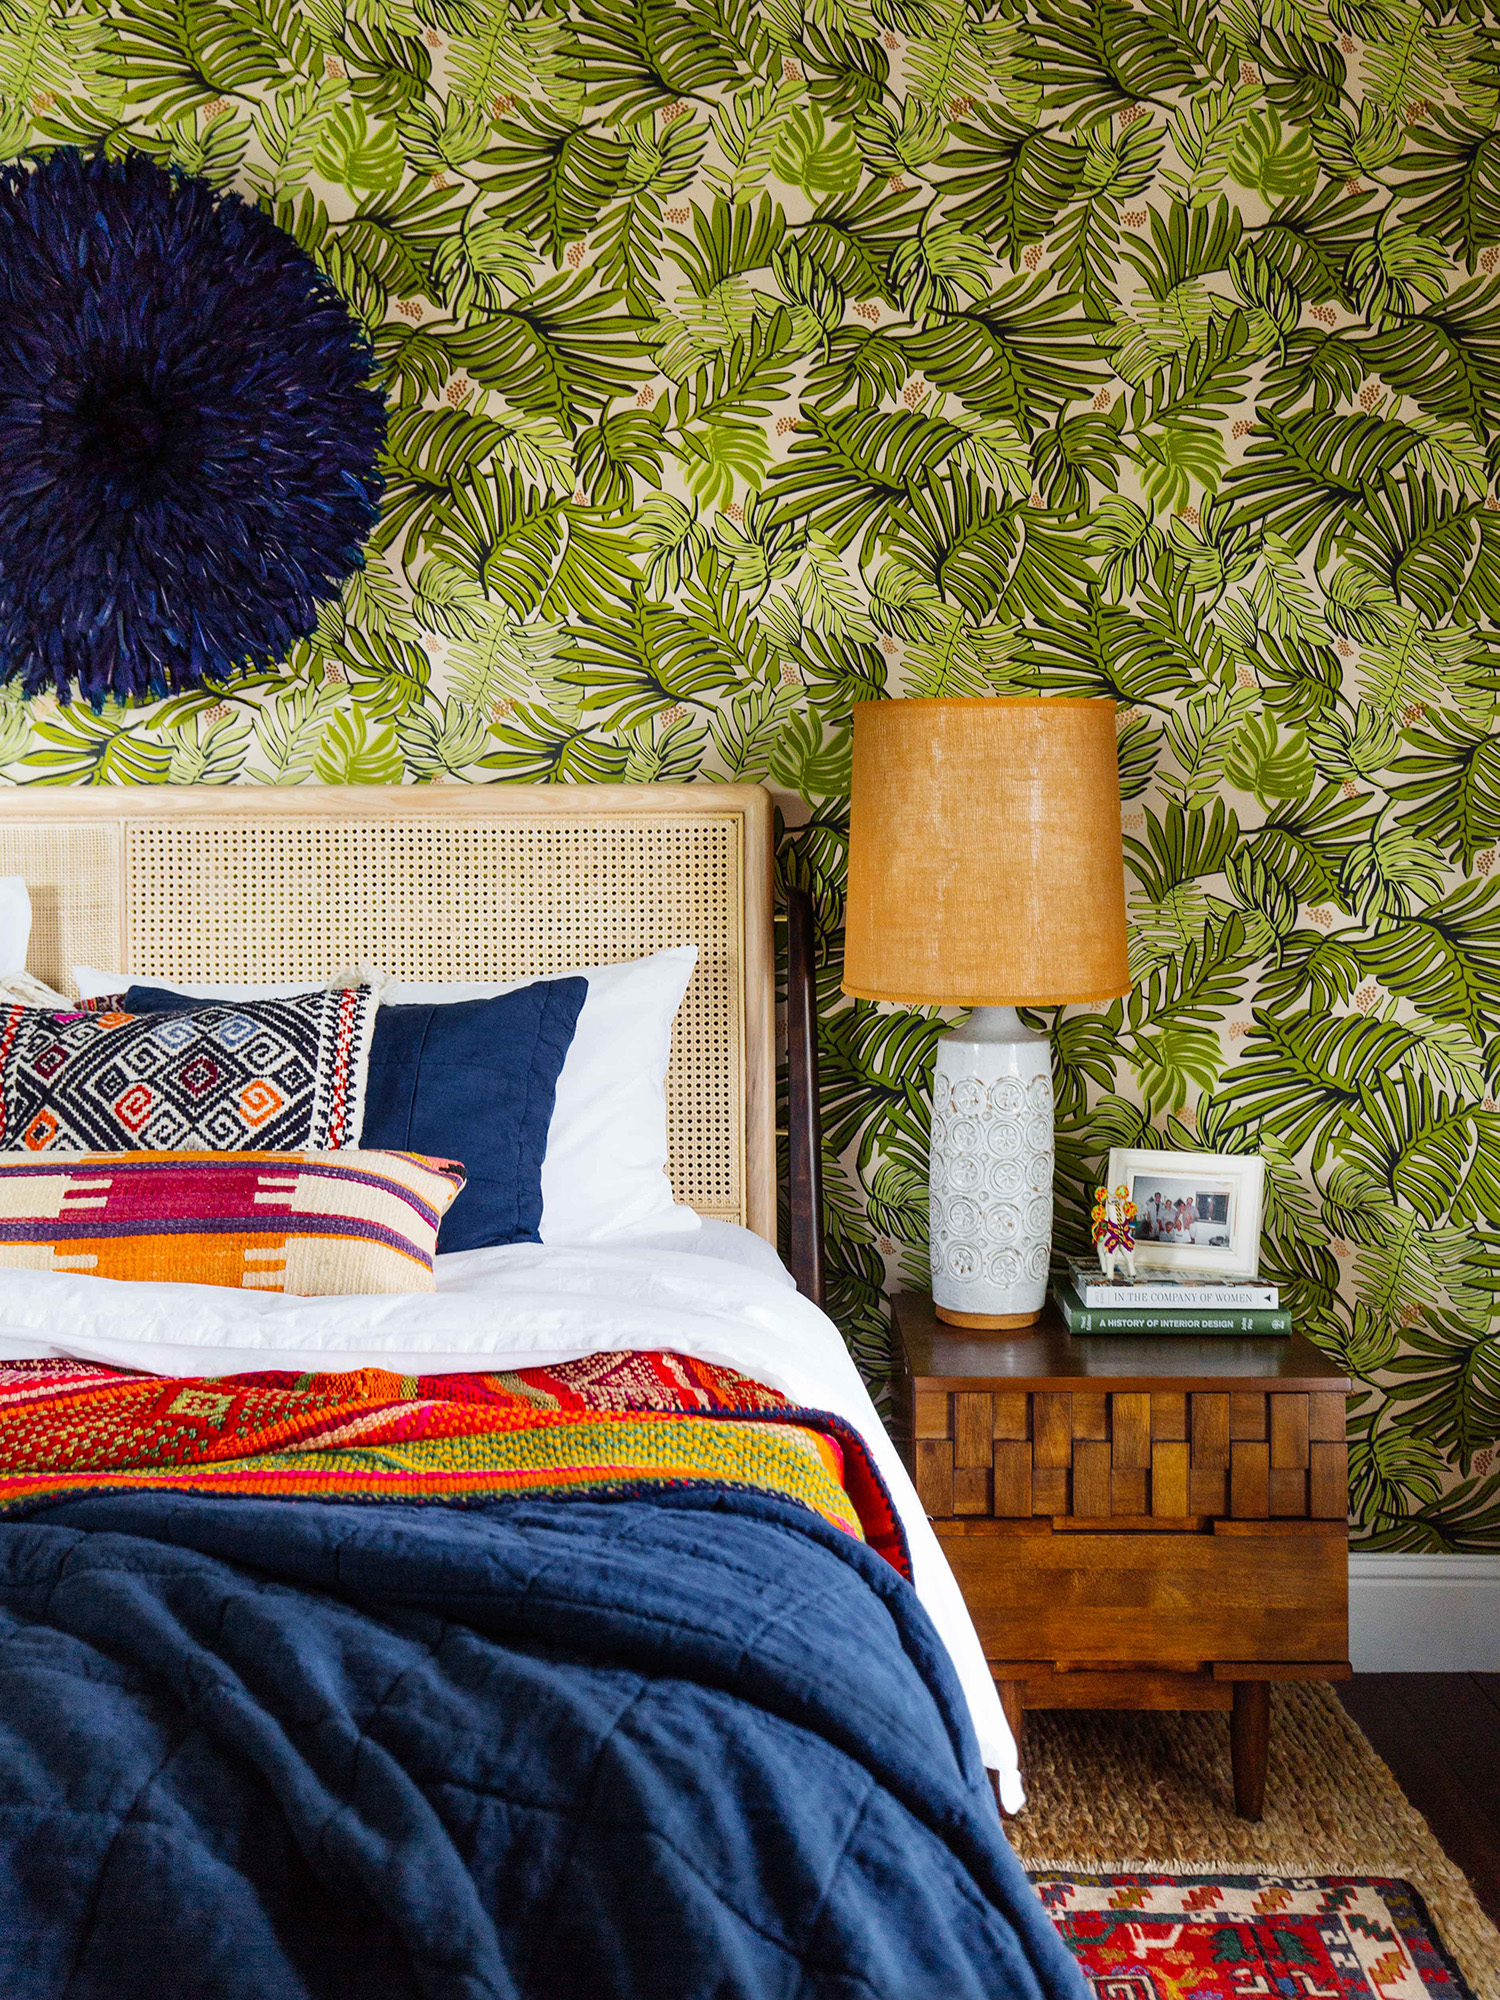 3 ways to style your pillows on a king size bed hepa